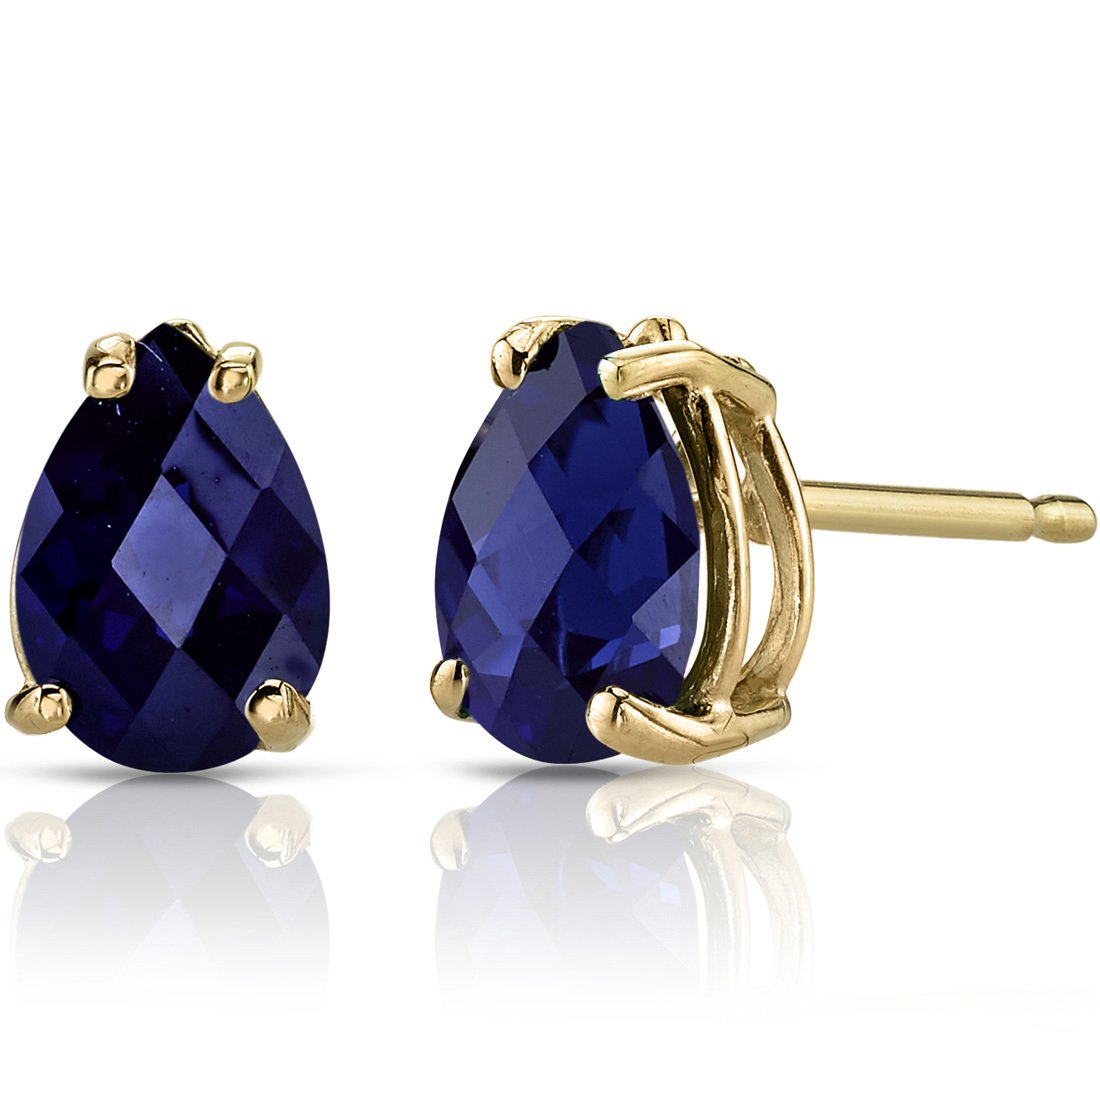 14K 14ct Yellow Gold 1.6 Ct Lab Blue Sapphire Stud Earrings Pear Cut 7 x 5 mm